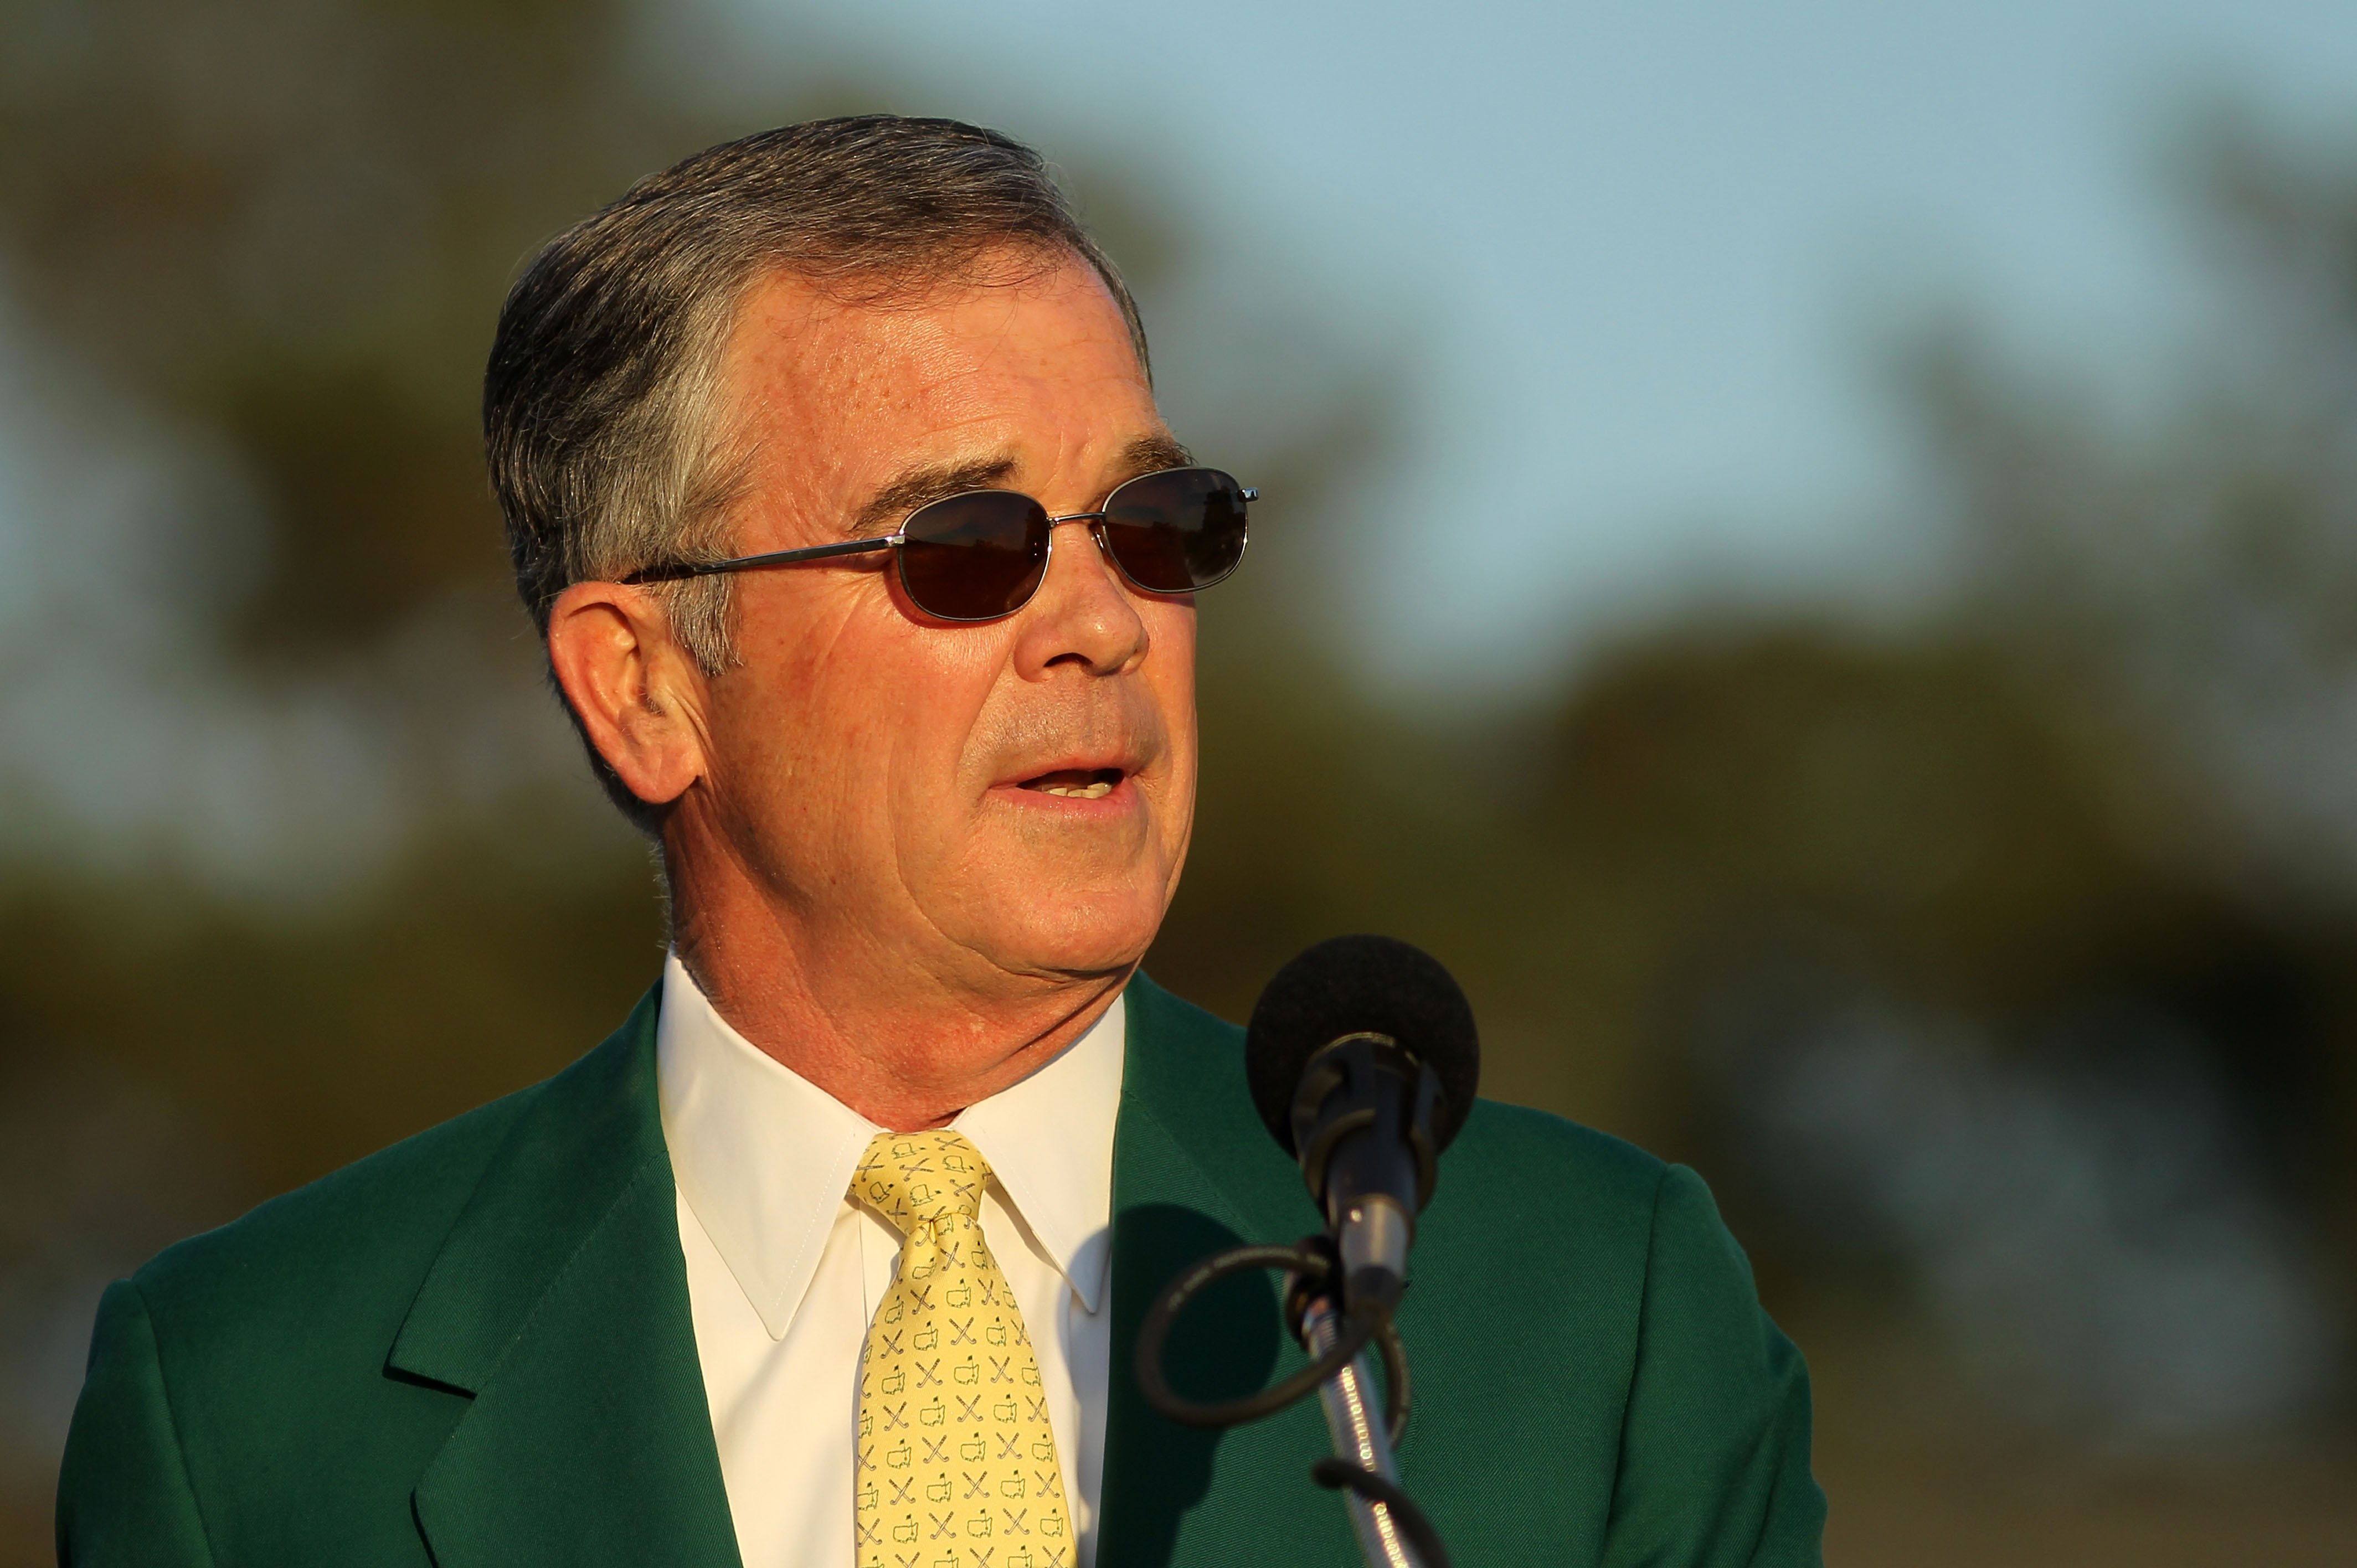 AUGUSTA, GA - APRIL 11:  Augusta National Chairman William Porter 'Billy' Payne speaks to the gallery during the green jacket presentation after the final round of the 2010 Masters Tournament at Augusta National Golf Club on April 11, 2010 in Augusta, Geo